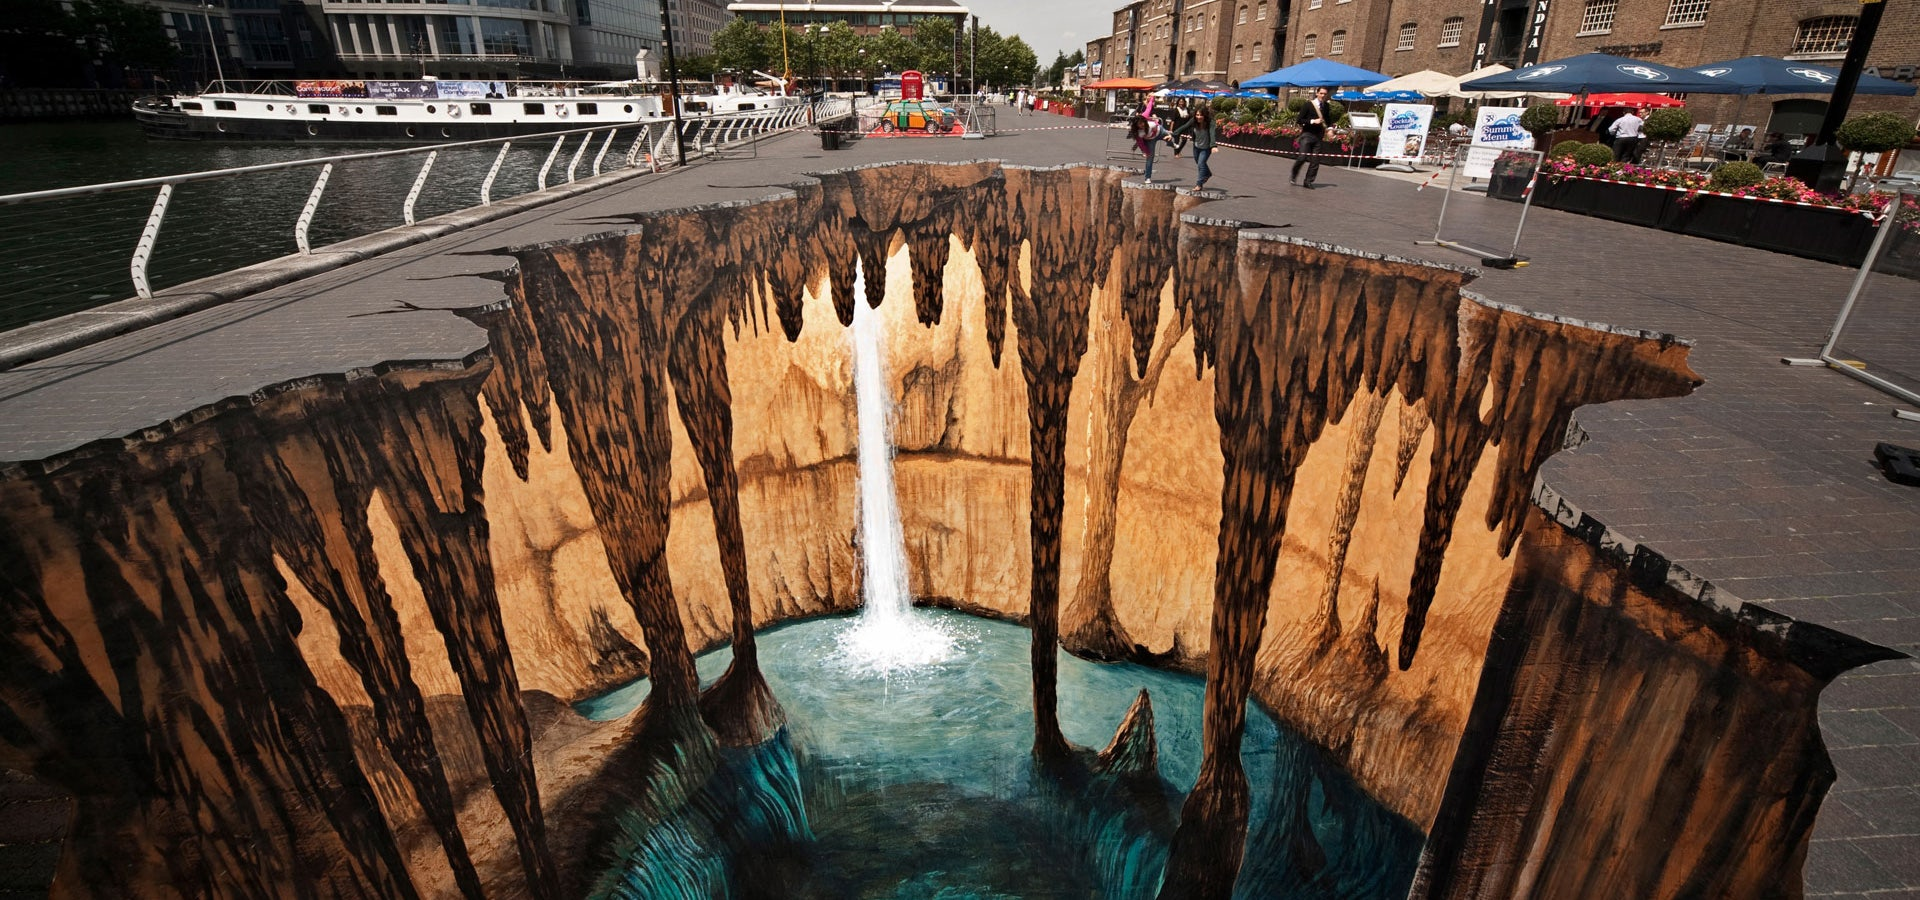 Ever since the graffiti boom street art started evolving with various forms and subsets such as 3d art and flash mob in fact graffiti and street art are